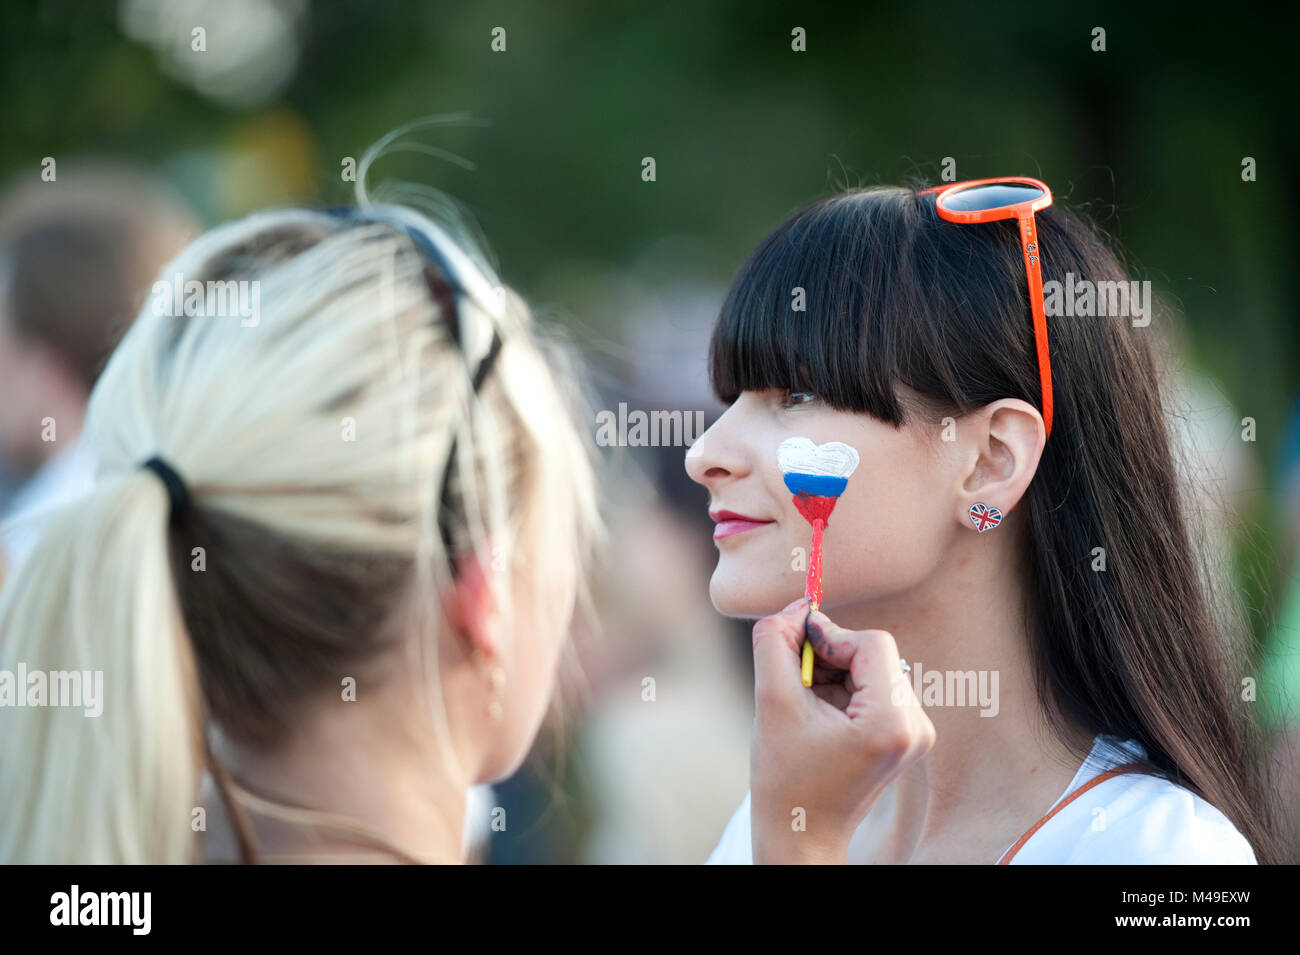 EURO 2012. National Stadium, Warsaw. Russia v Greece. Before match, a Russian fan has her afce painted with russian - Stock Image